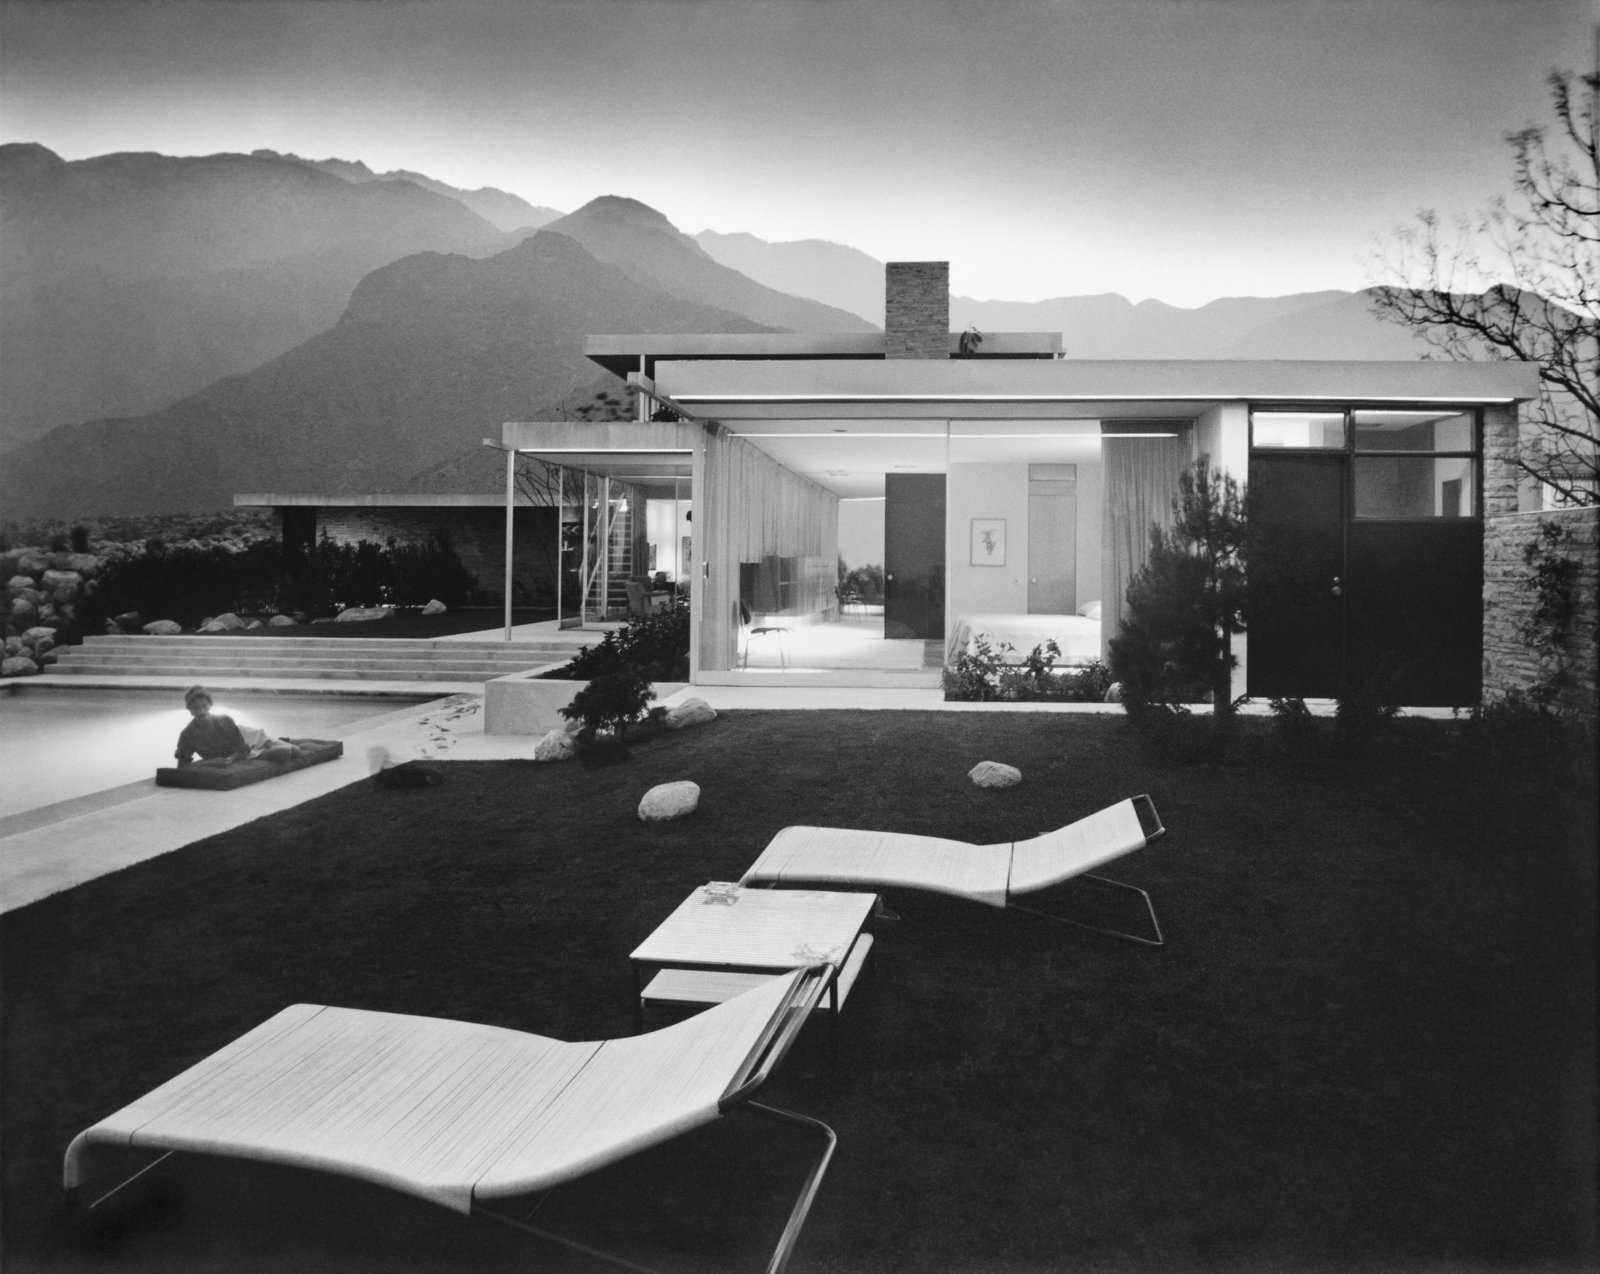 Jewish Designers' Influence on Midcentury Modernism - Dwell